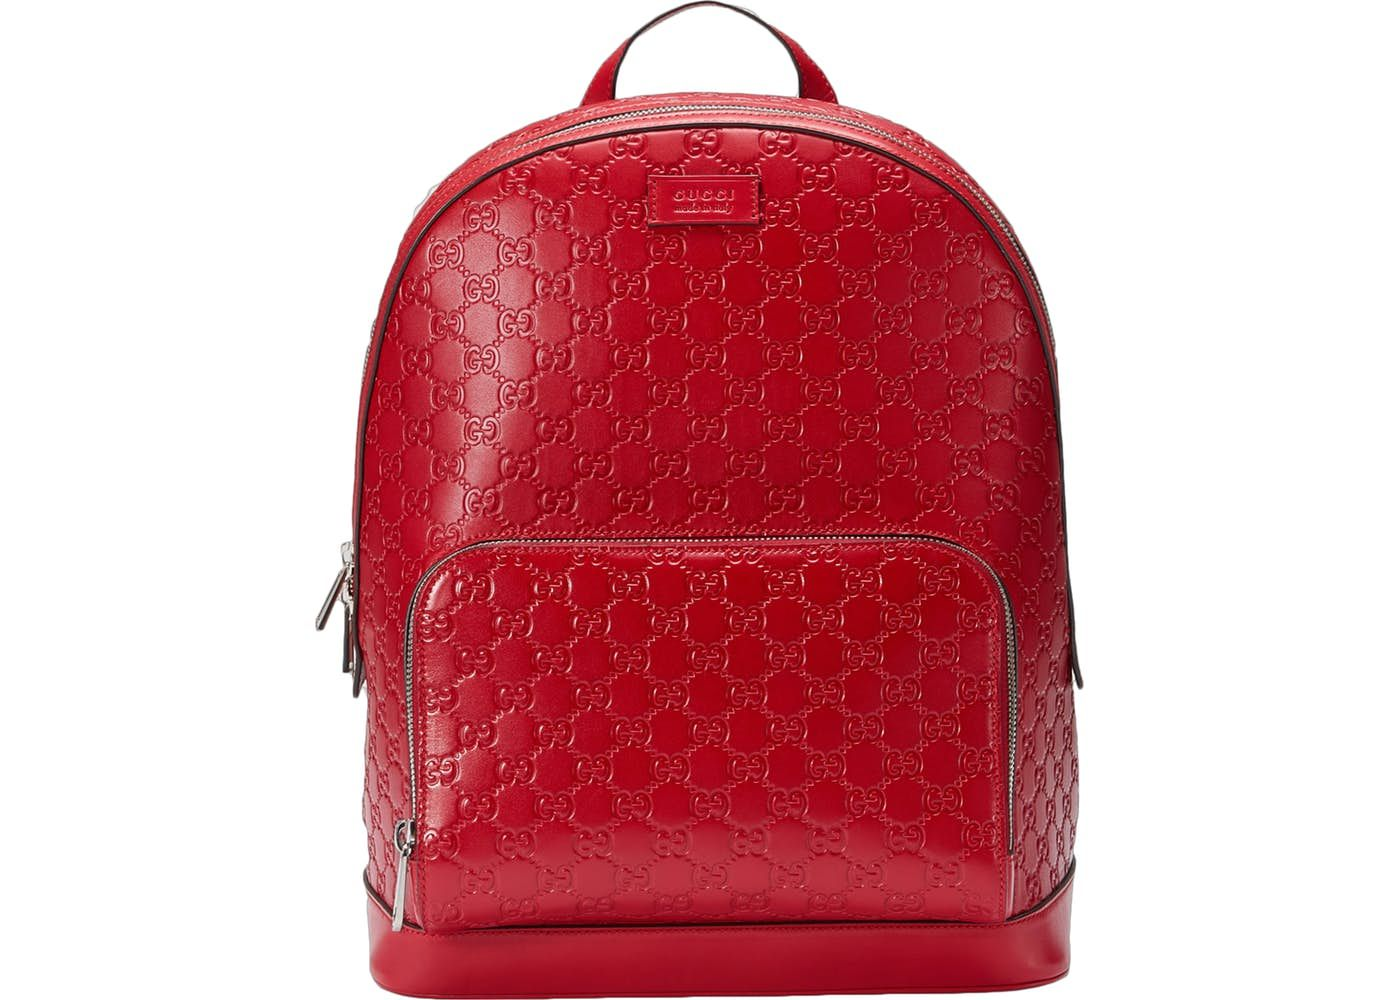 d6dfc0422 Gucci Signature Backpack Monogram GG Front Zipper Pocket/Embossed Hibiscus  Red